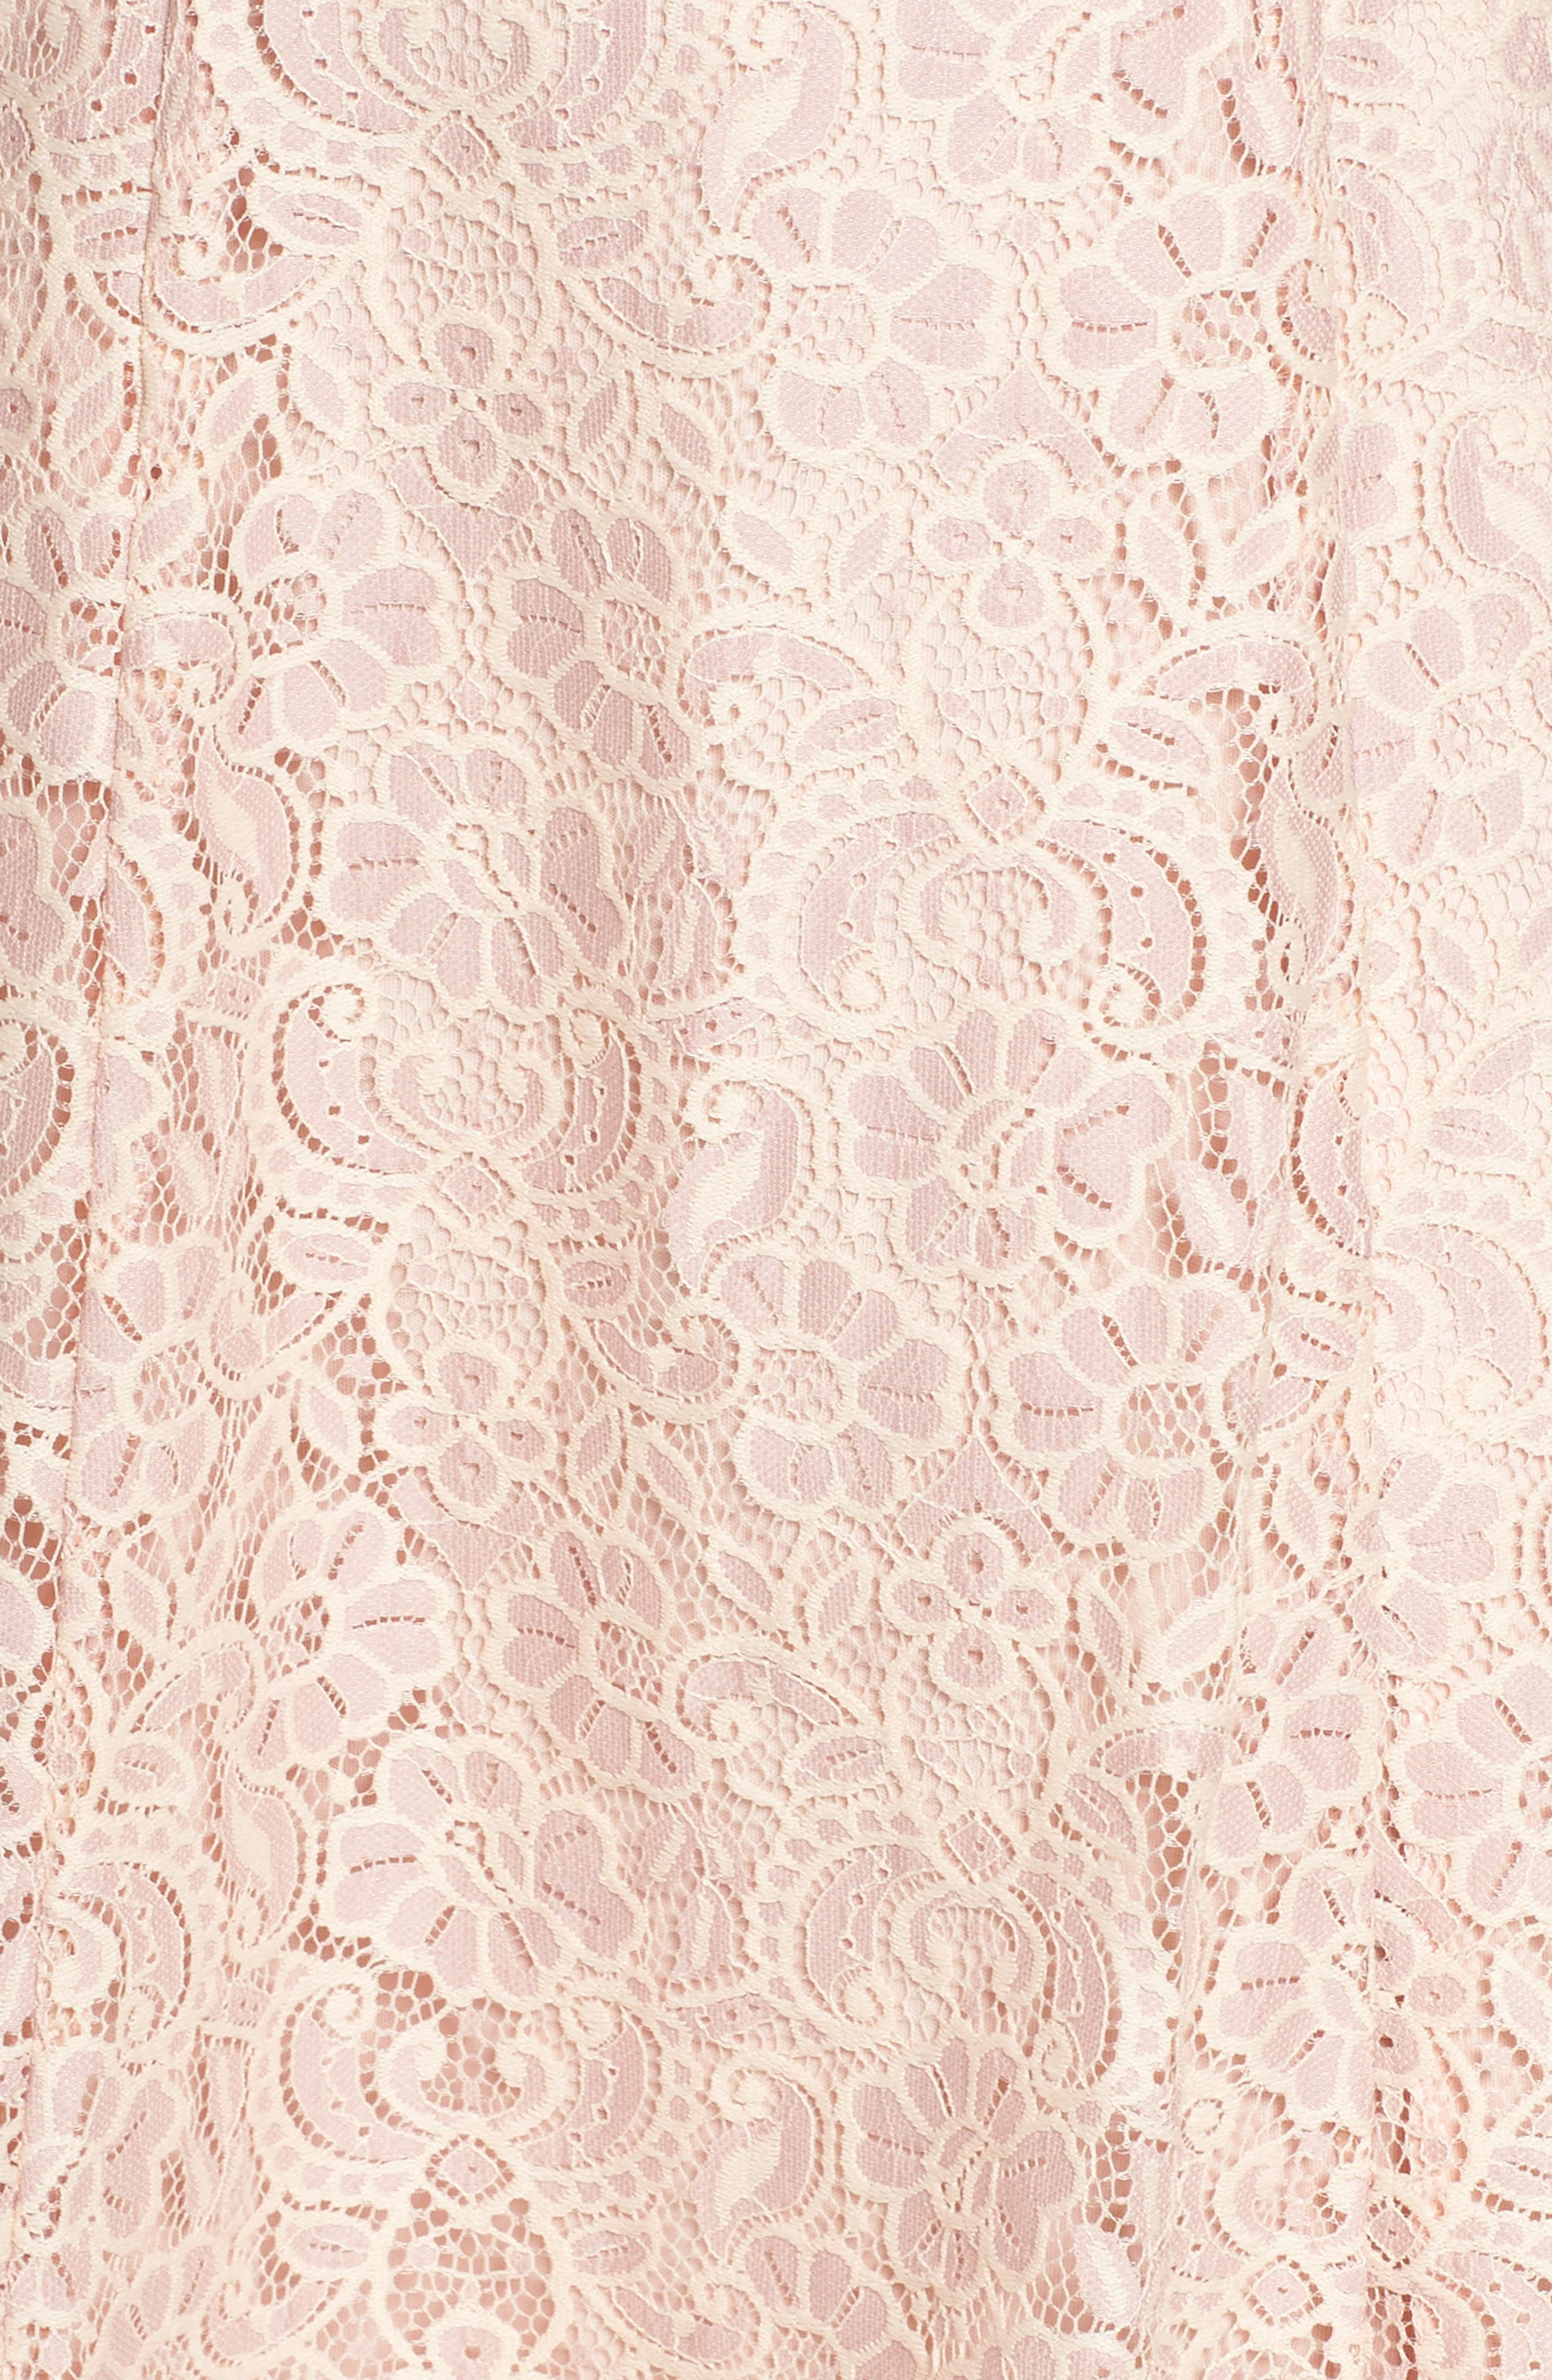 Off the Shoulder Lace Dress,                             Alternate thumbnail 5, color,                             DUSTY PINK